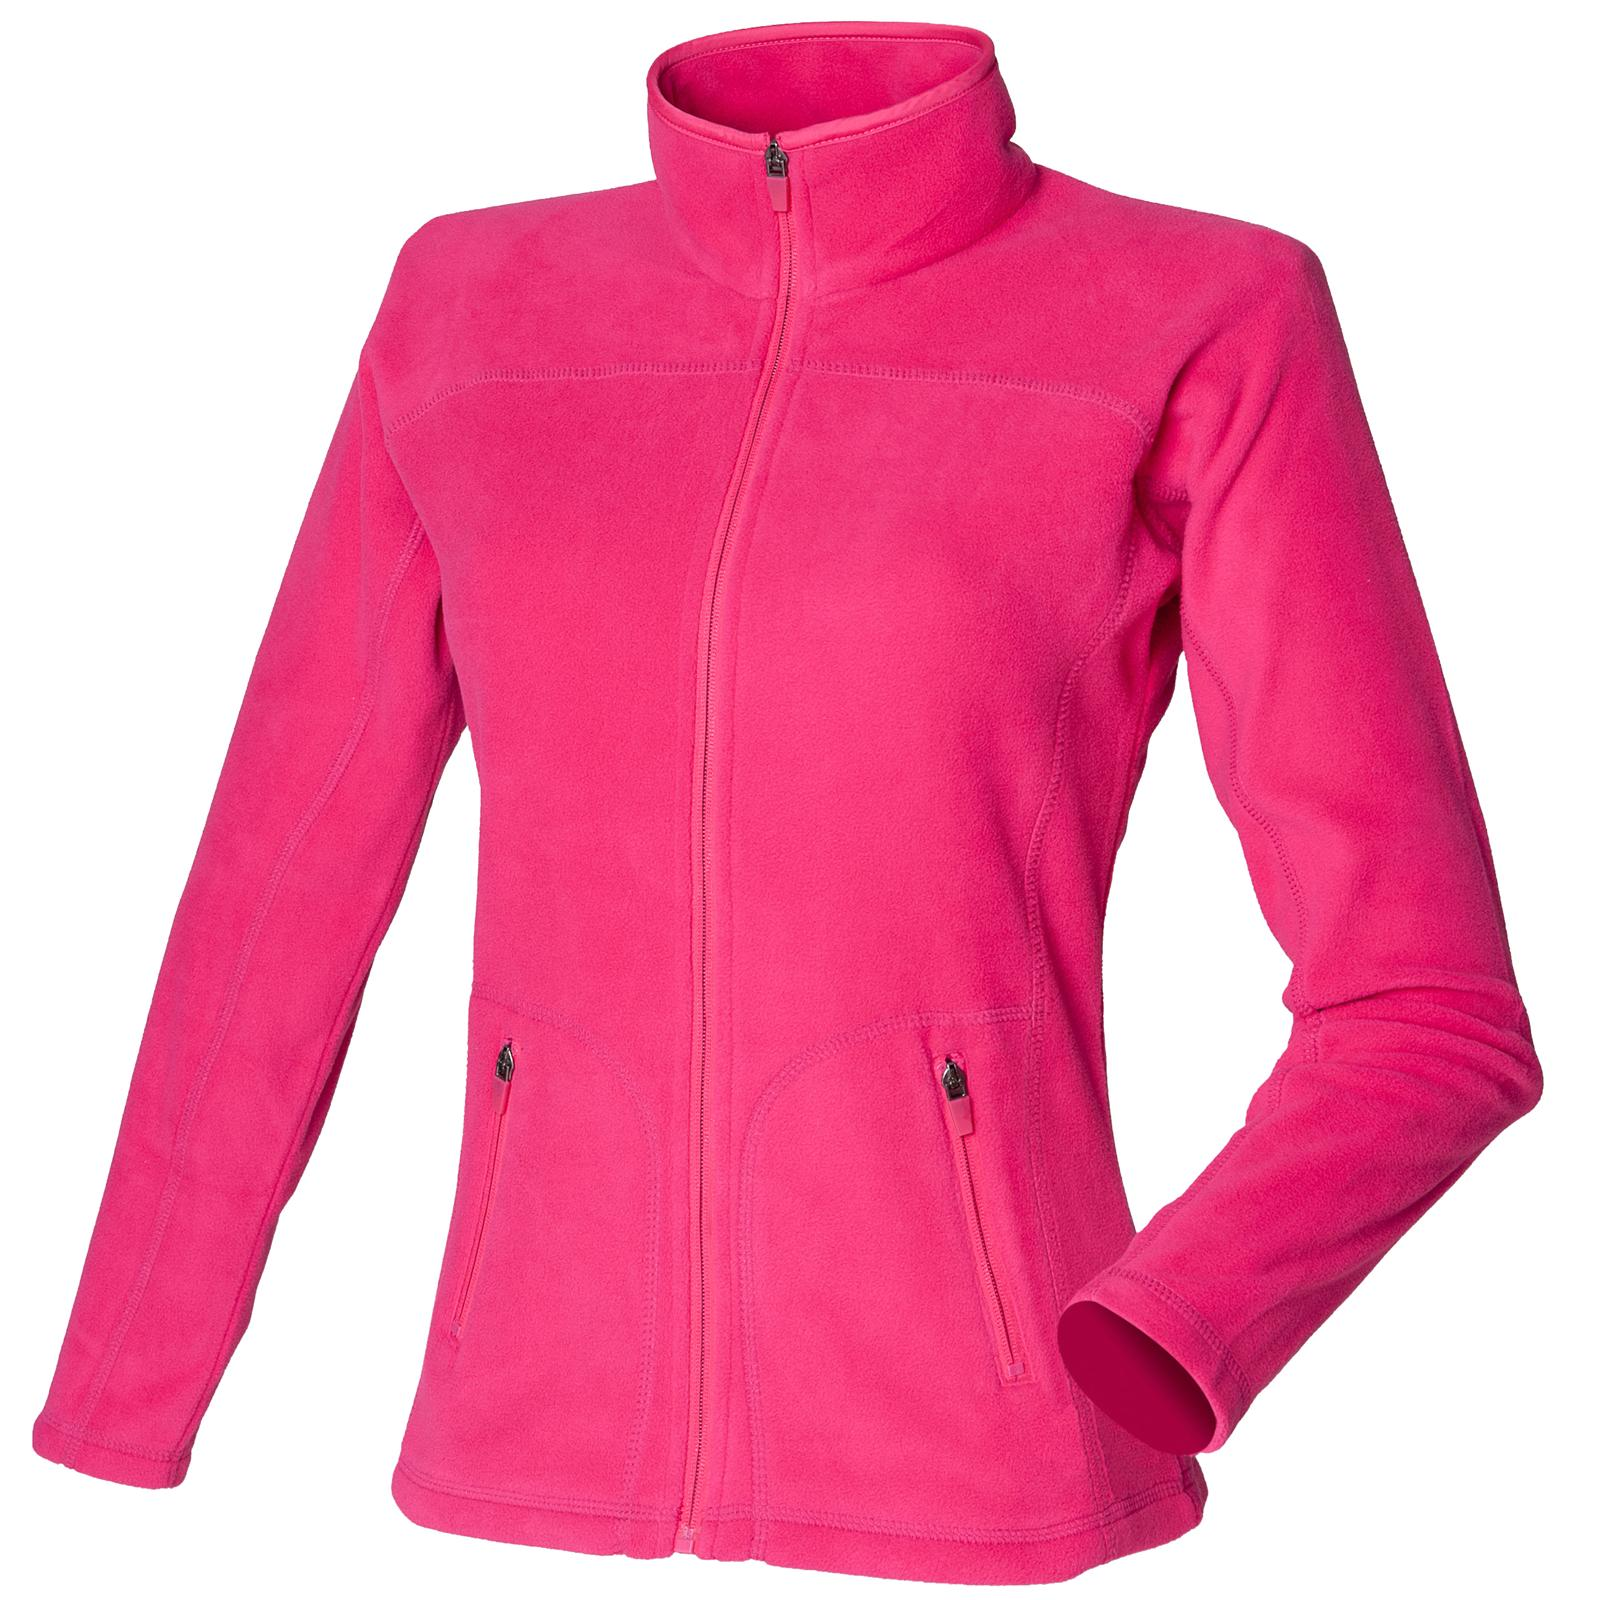 New SKINNI FIT Womens Ladies Fitted Micro Fleece Jacket in 3